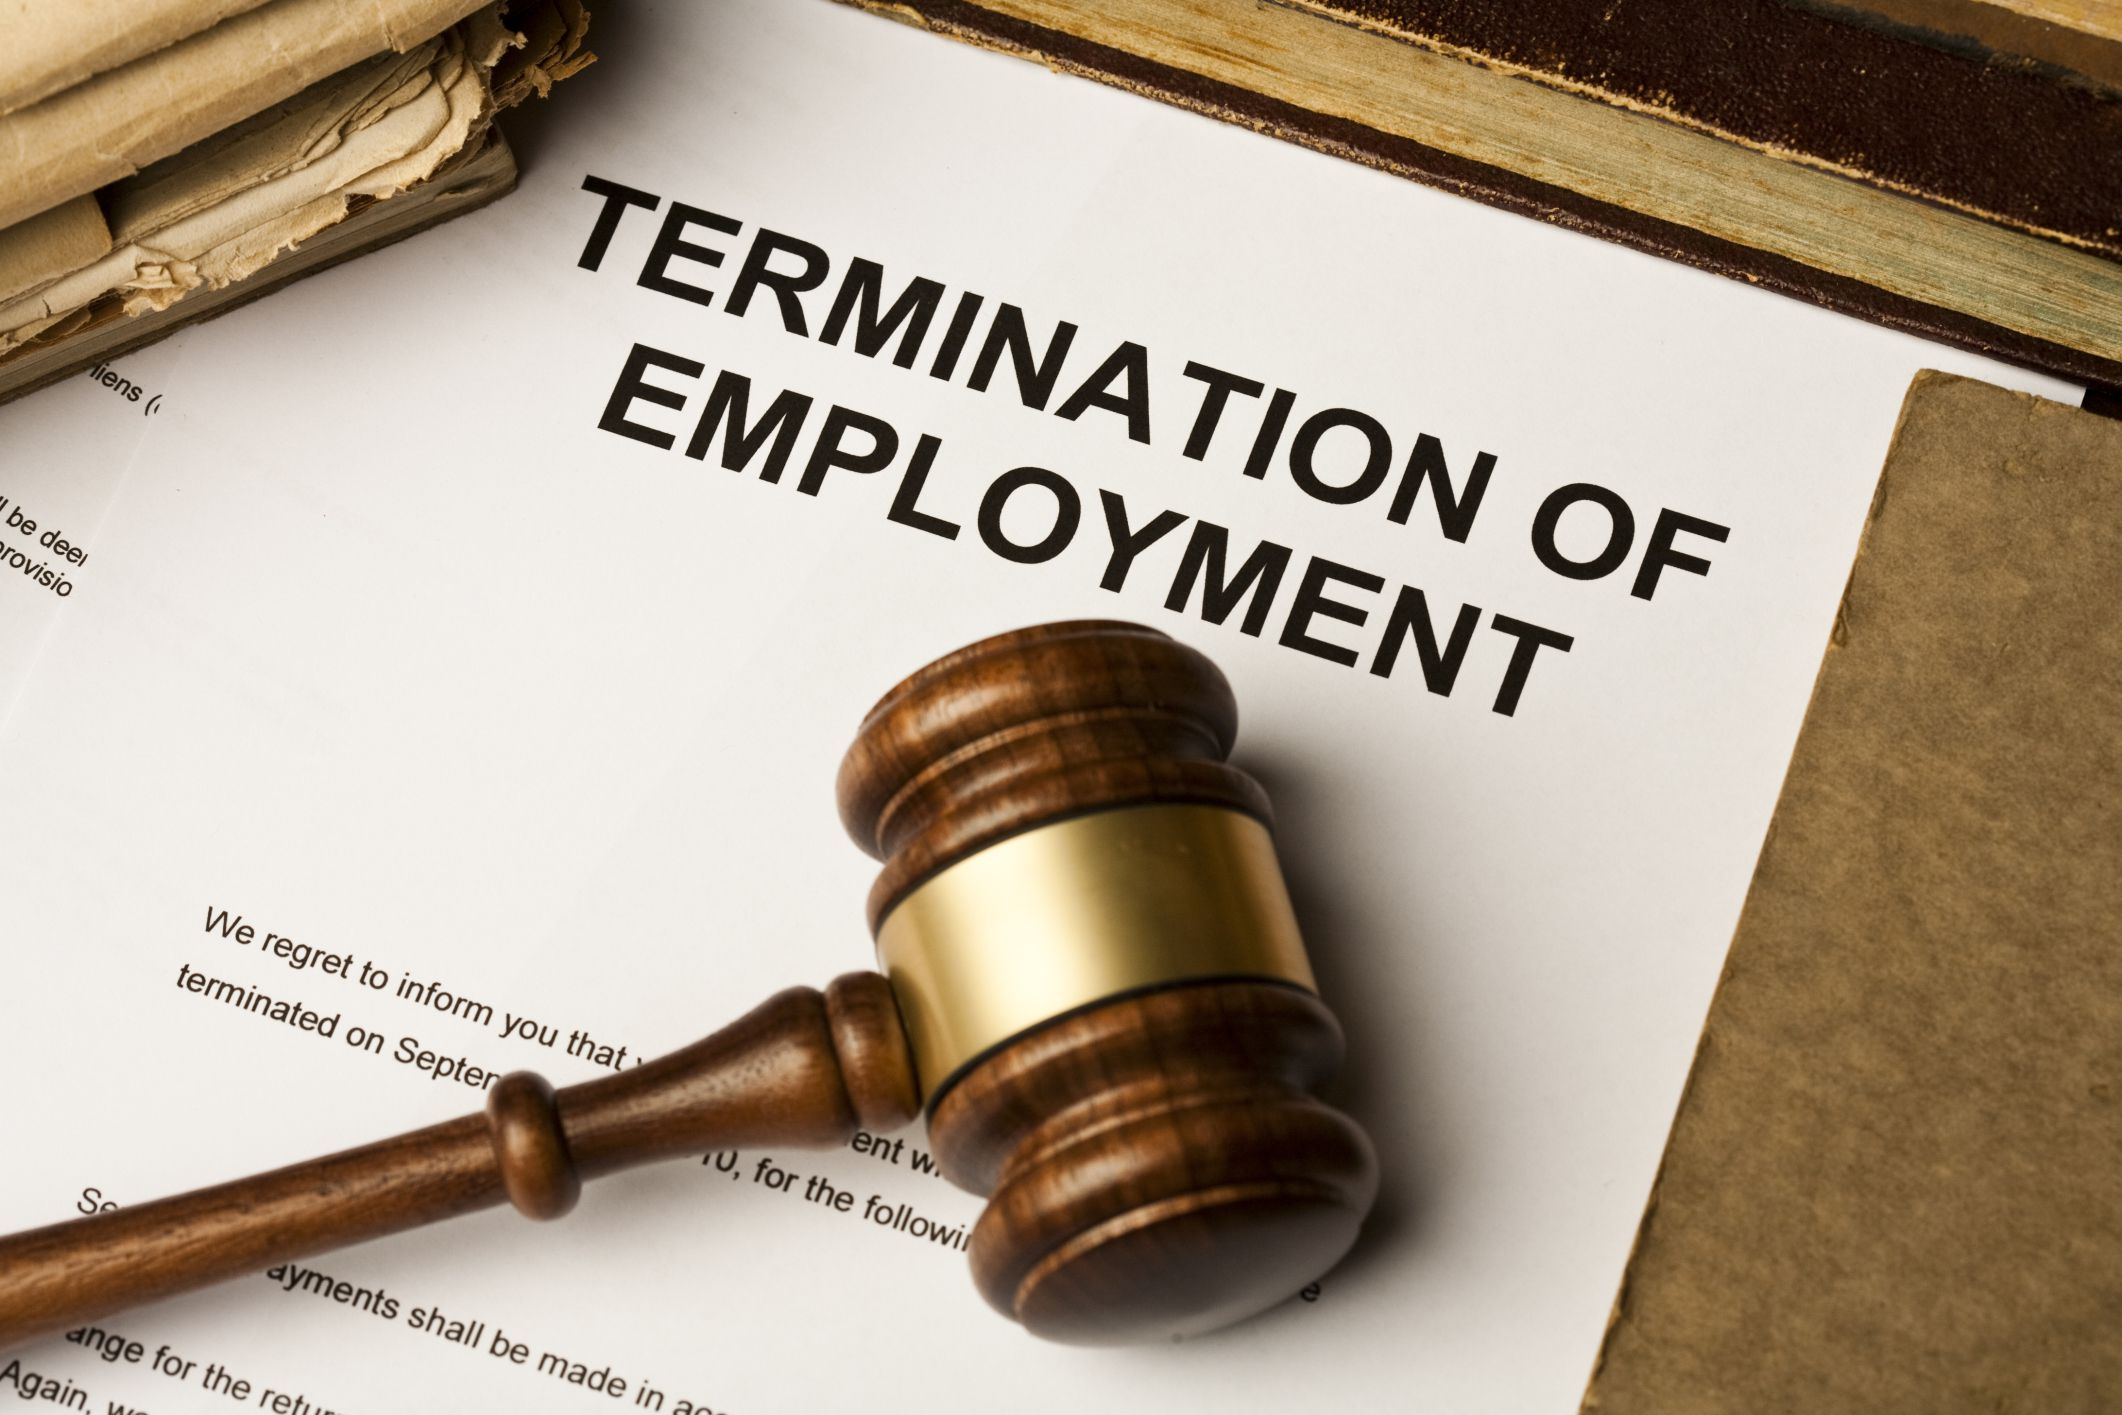 resigned in lieu of termination